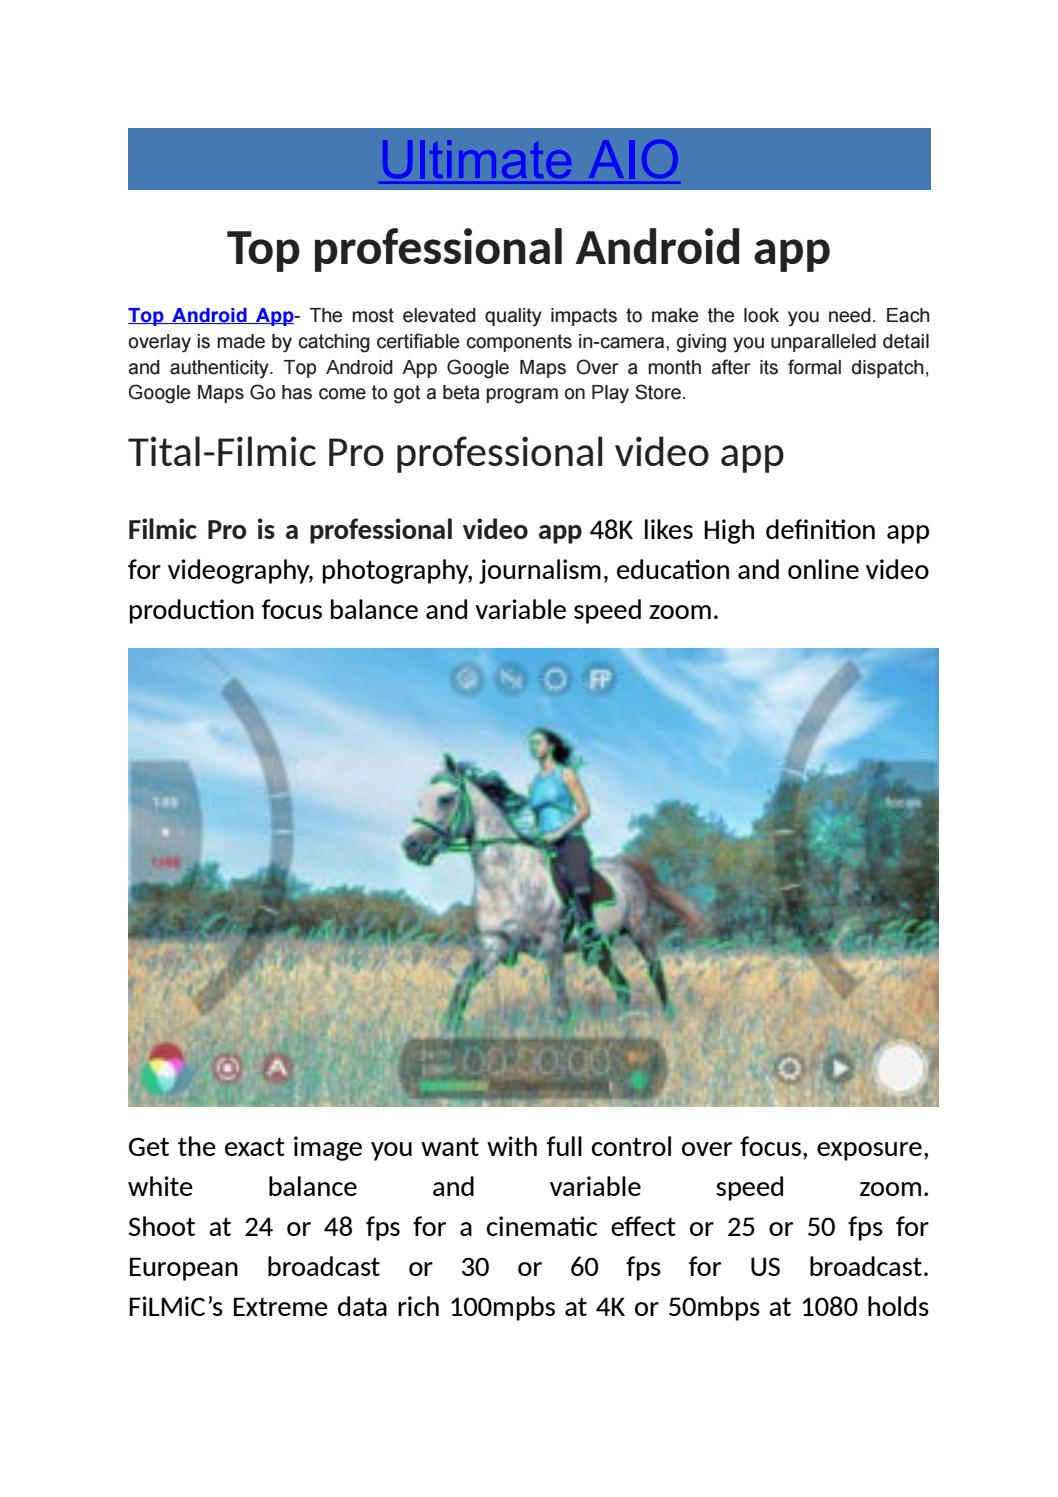 Top professional android app by emma watson - issuu